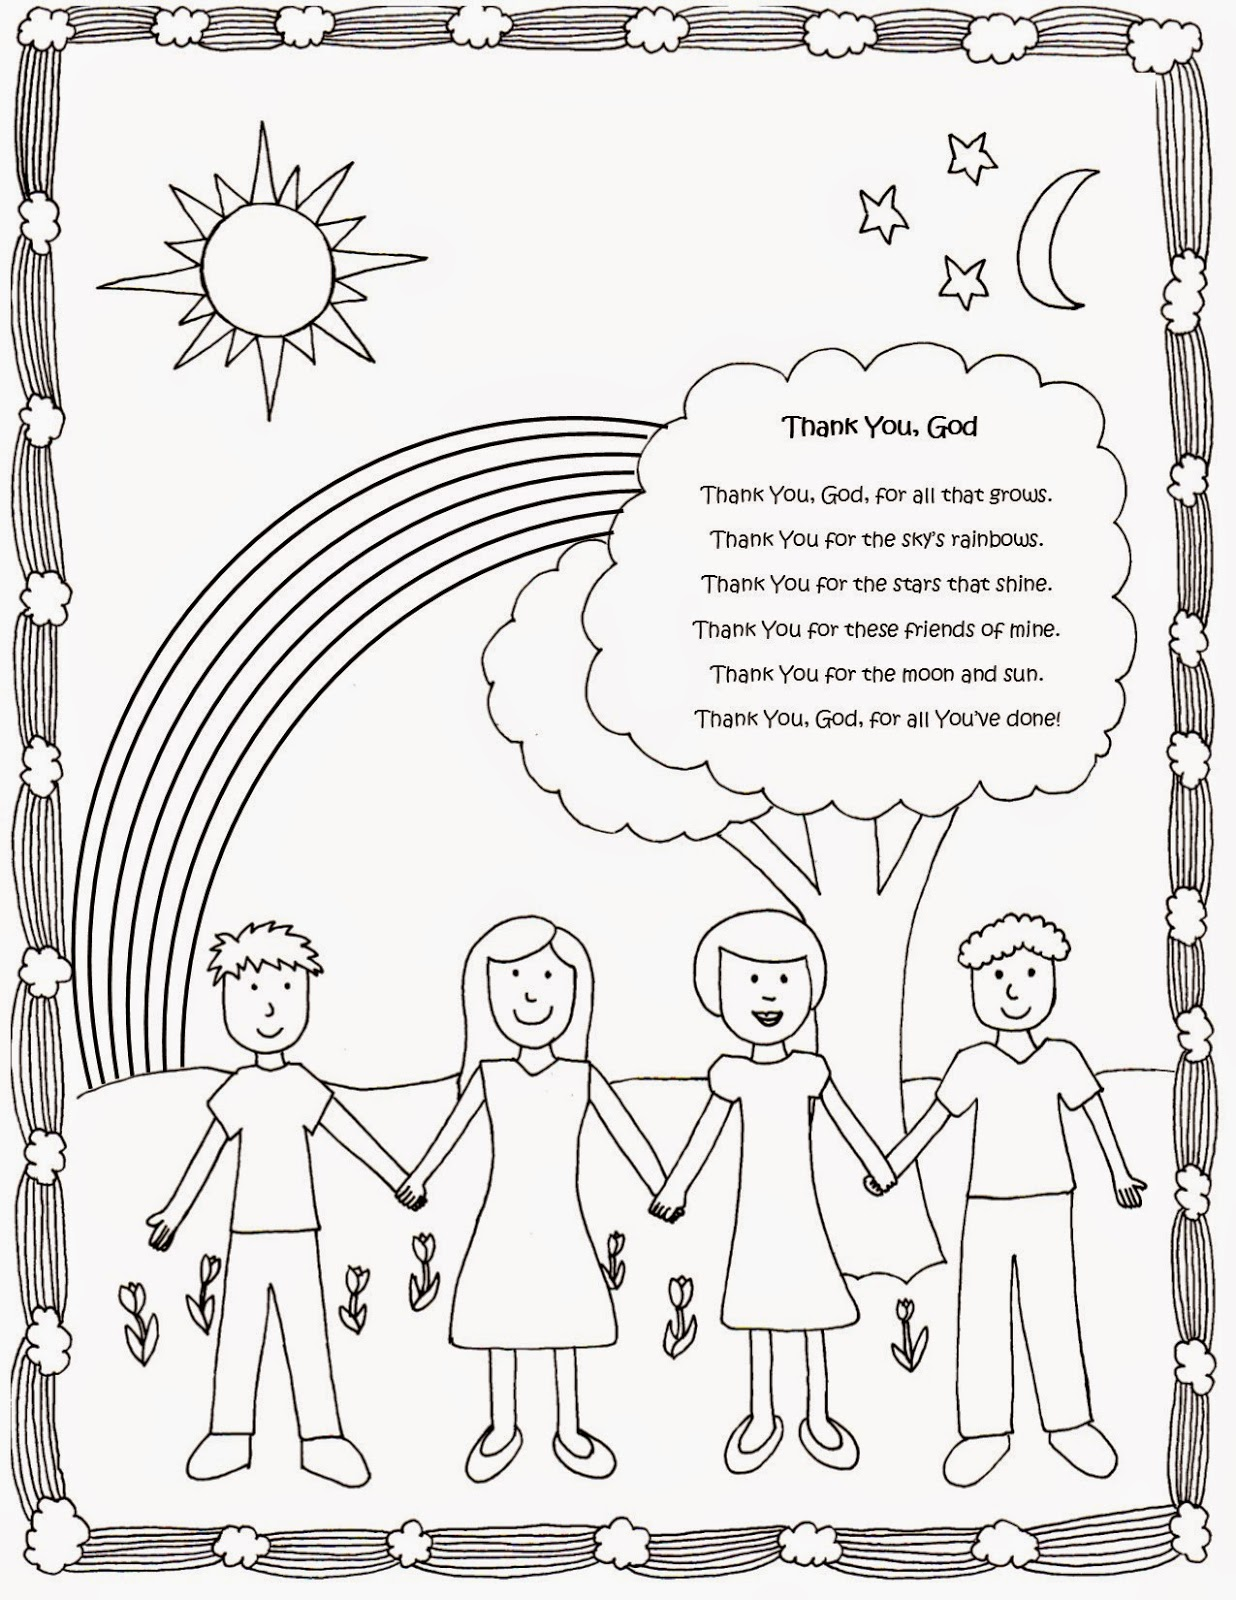 Drawn2bcreative Cute And Free Coloring Page With Thank